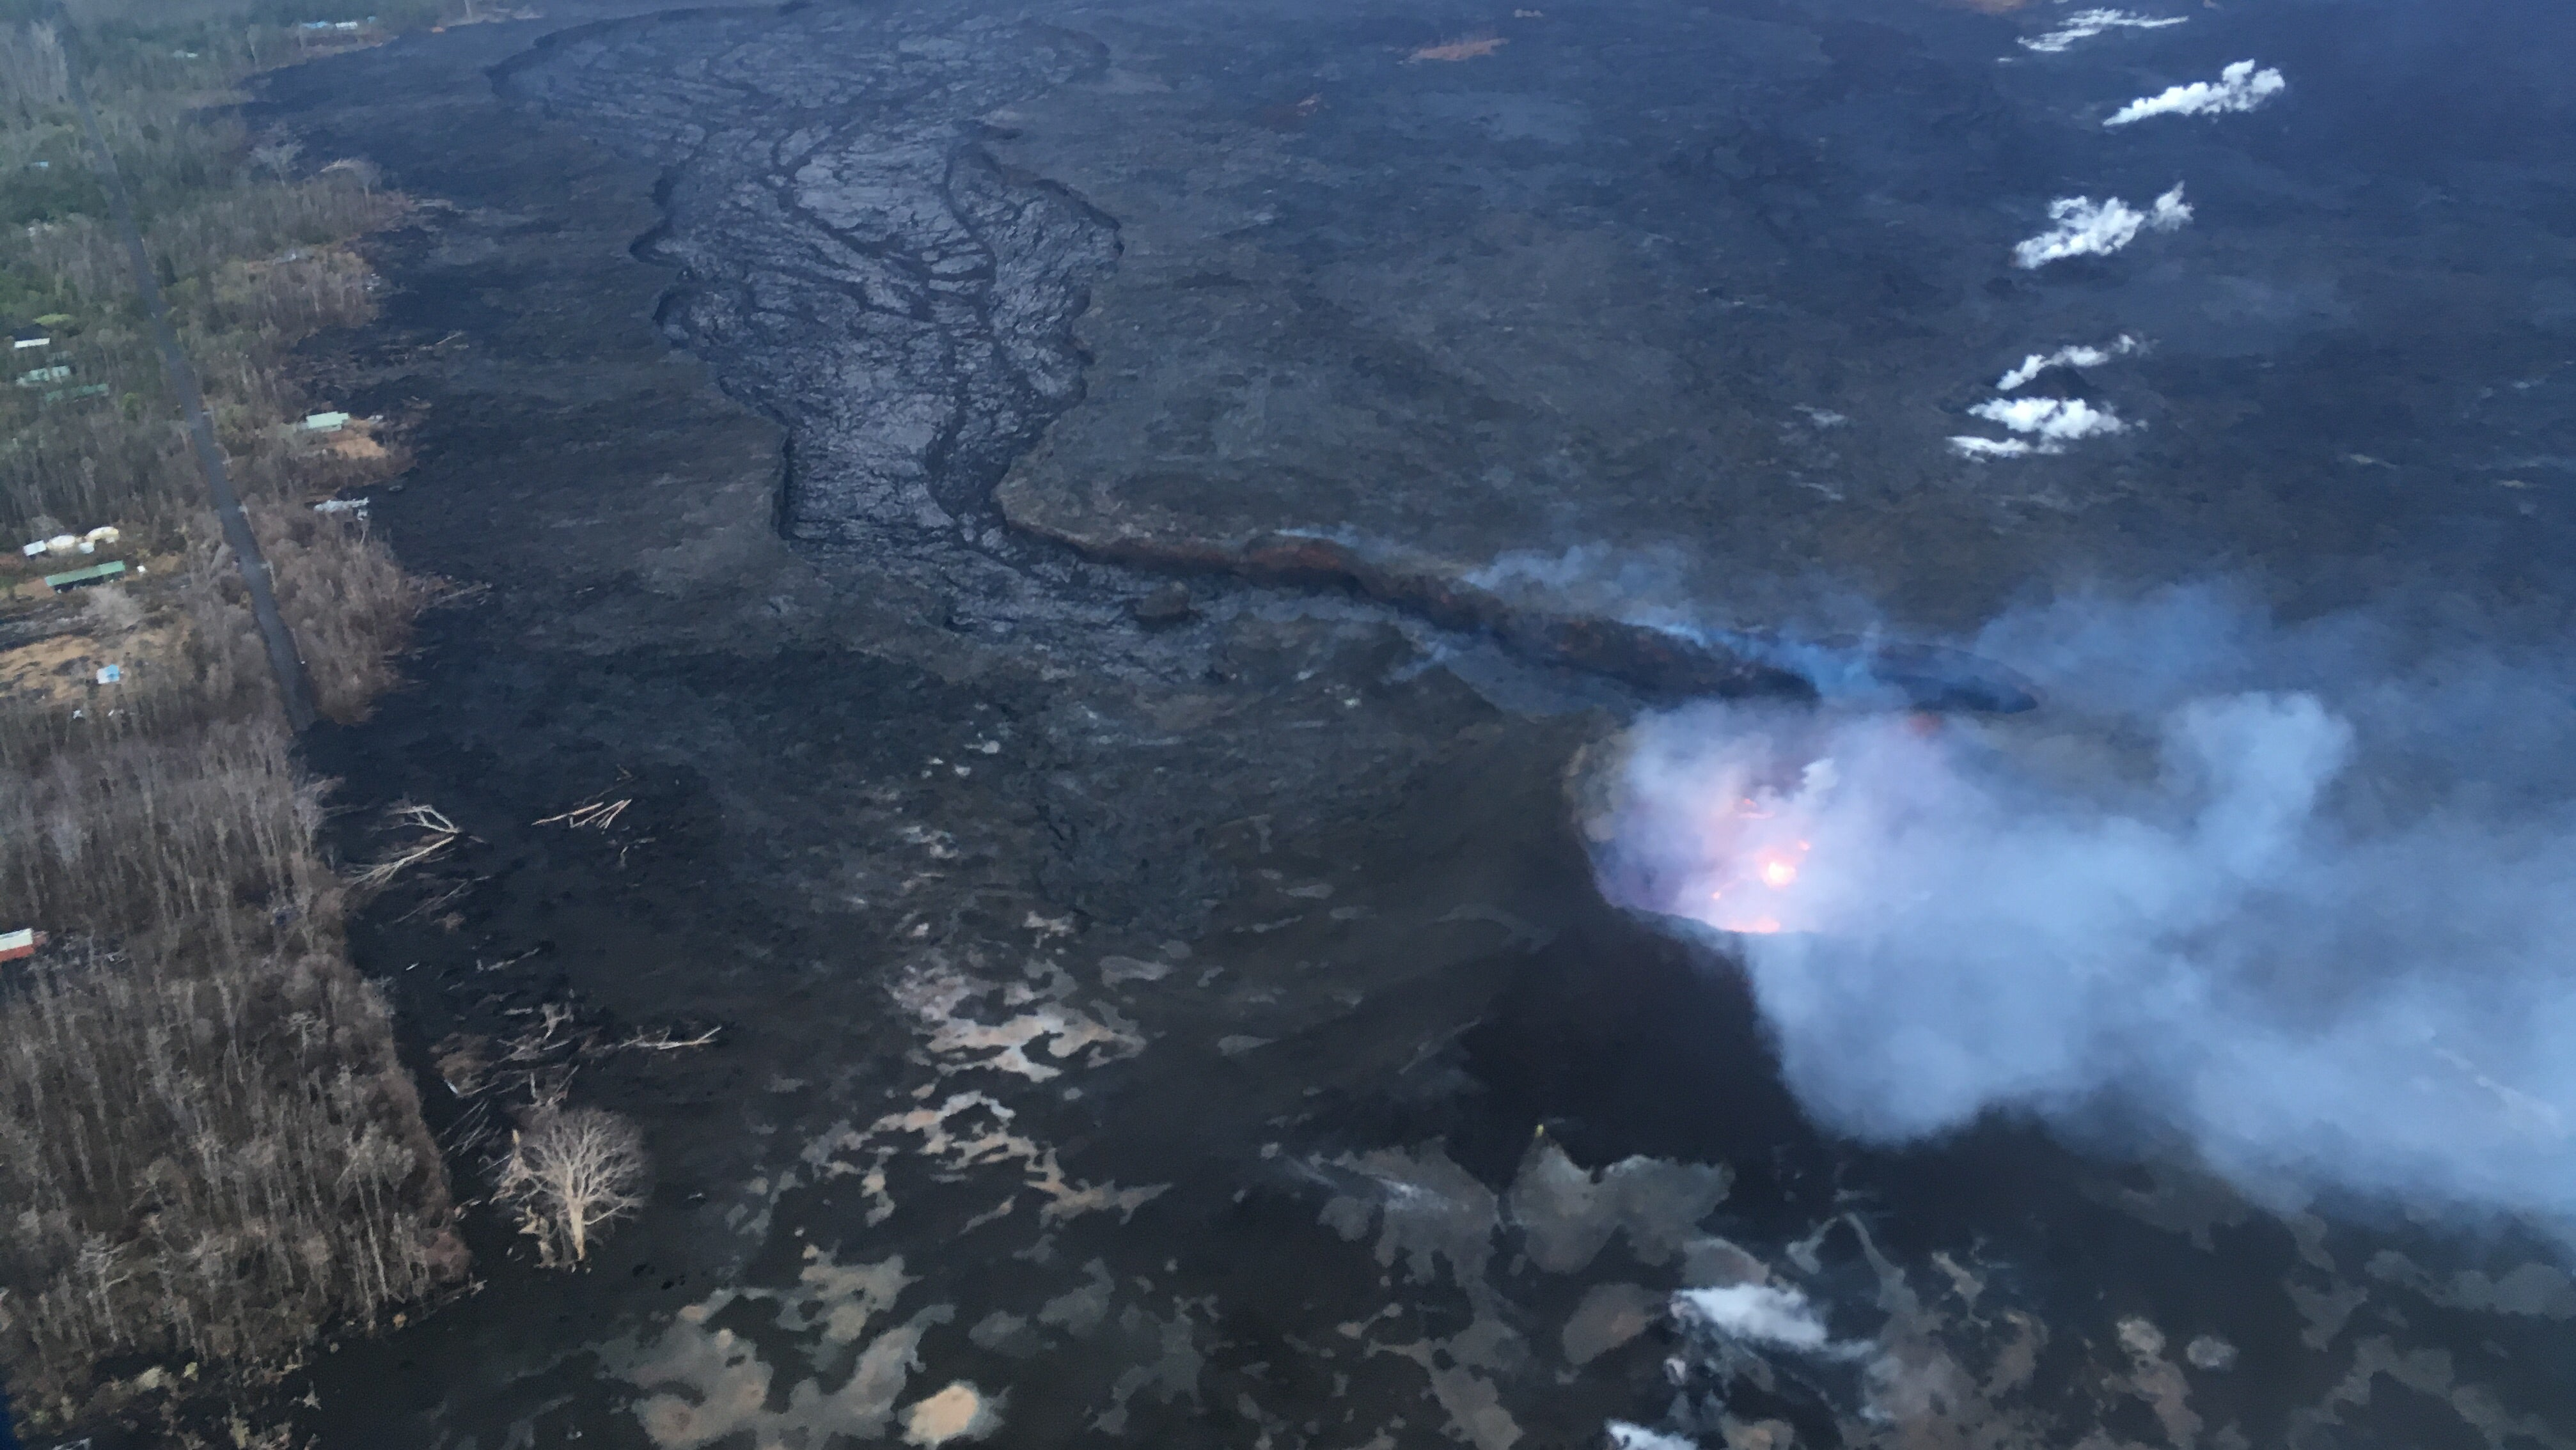 Kilauea's Eruption Is On Pause For Now